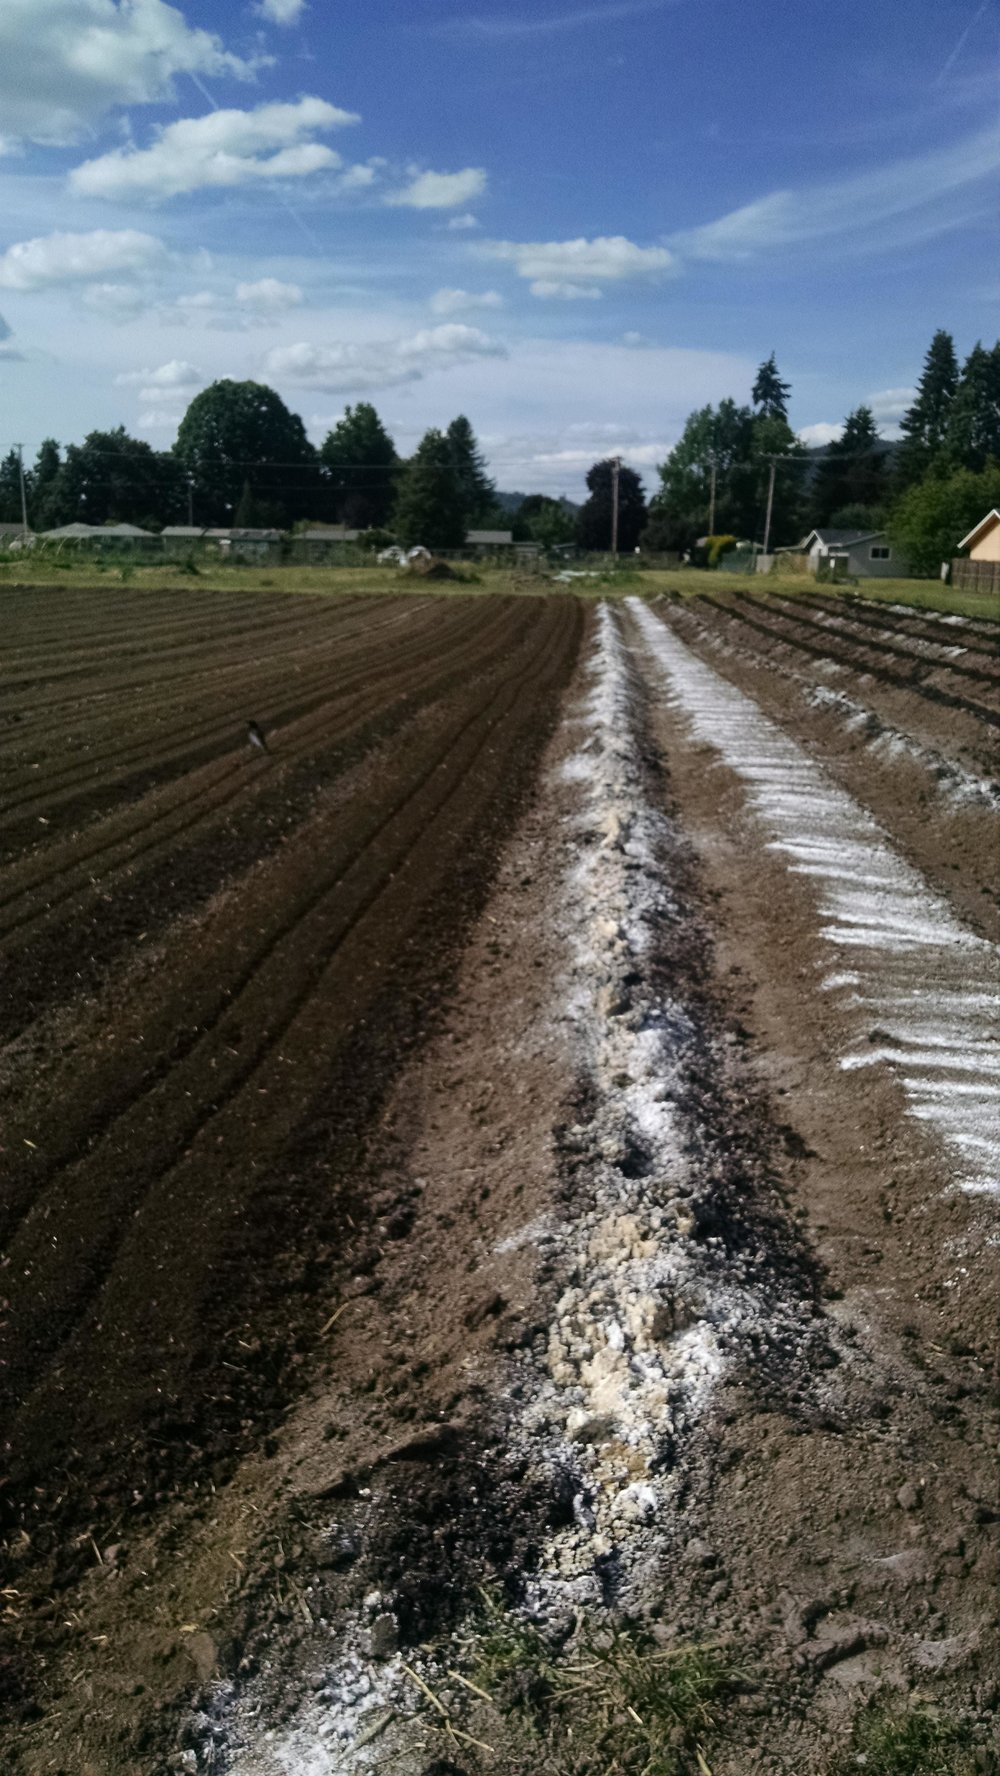 Final till of limestone and manure for the winter squash beds